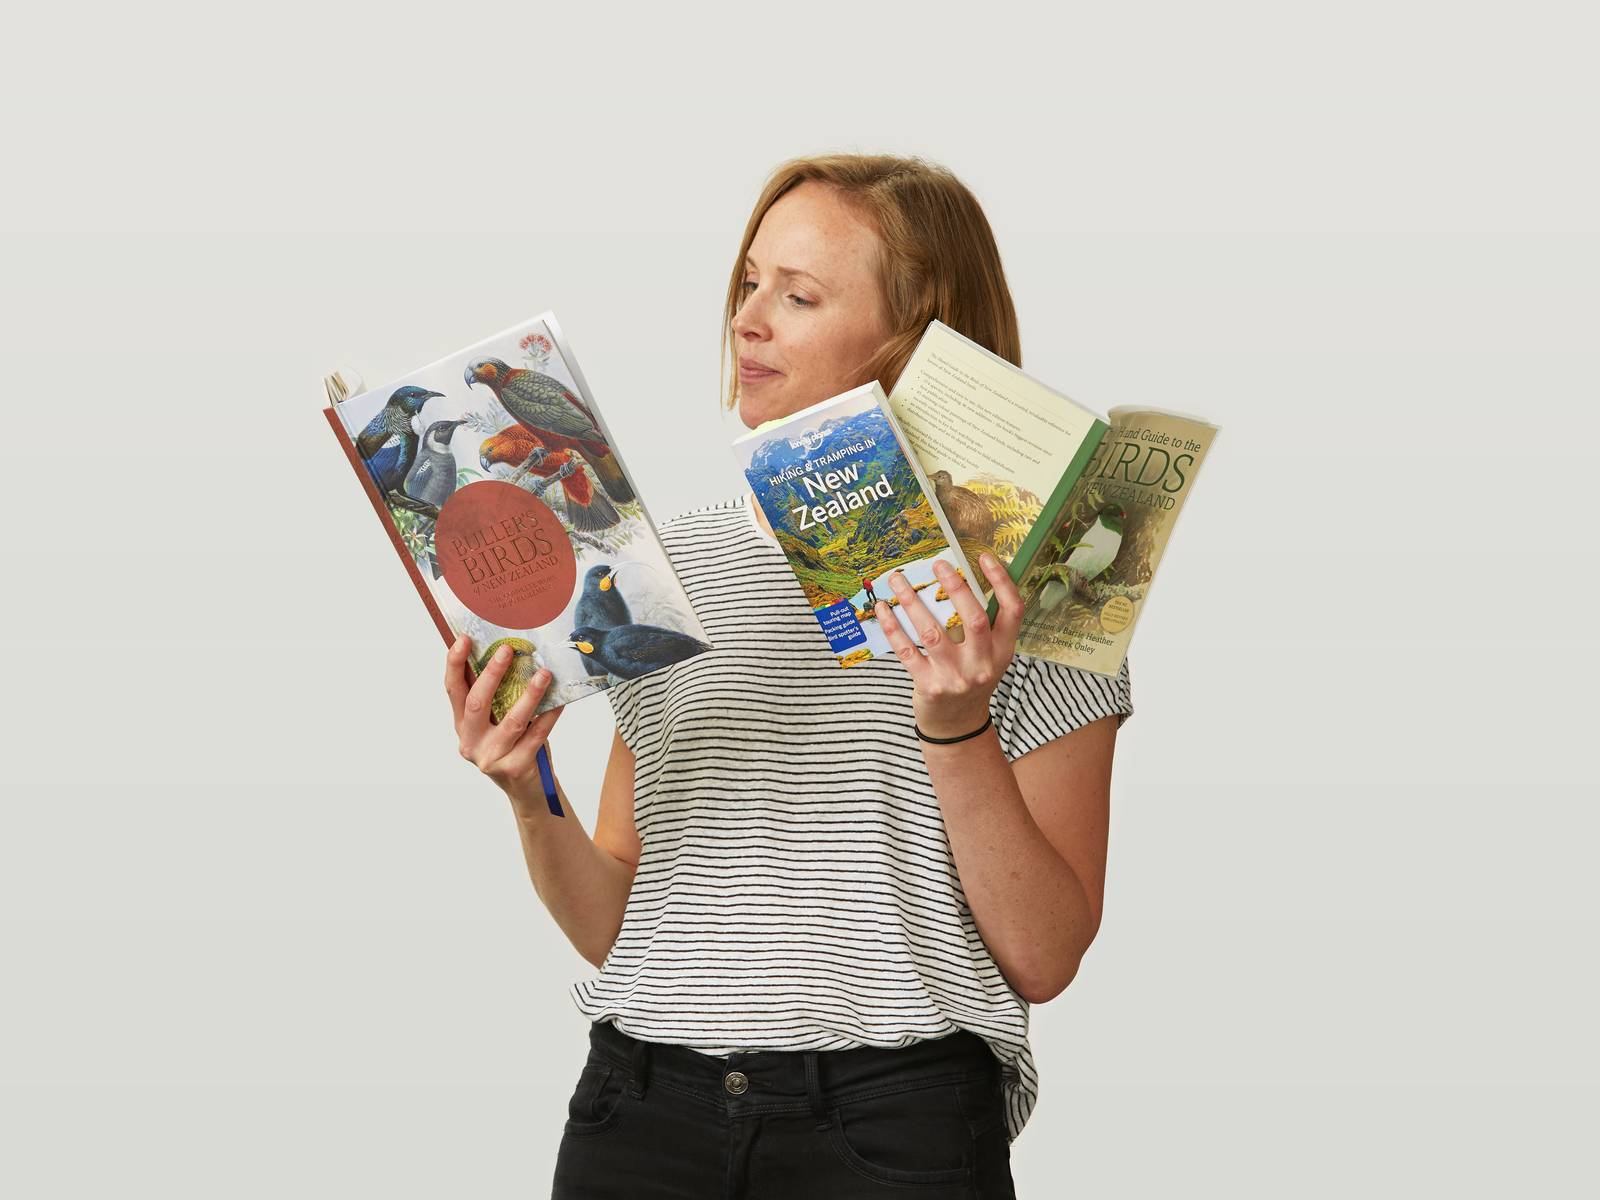 Fran Evans with books